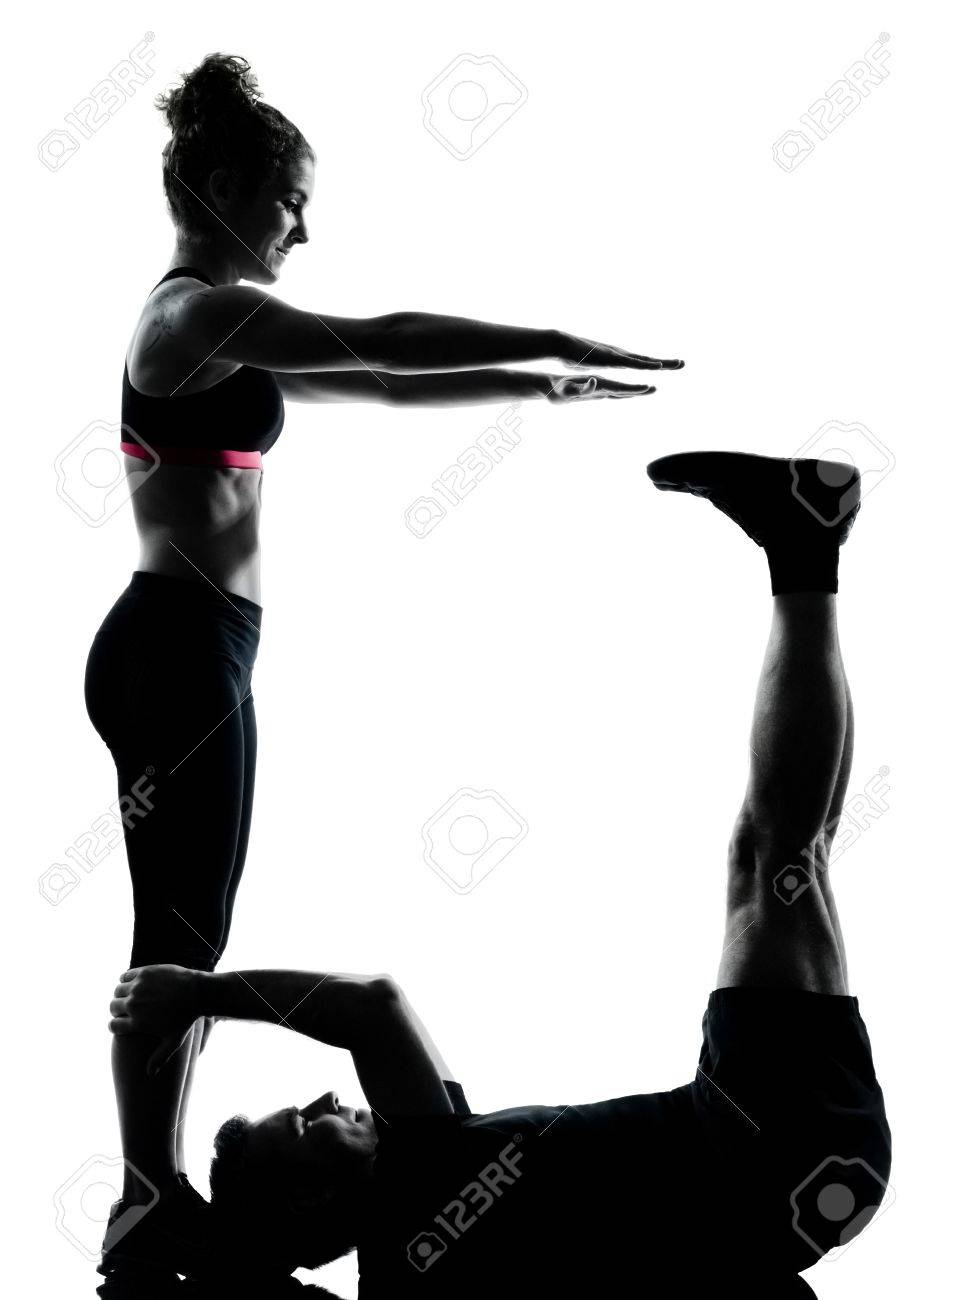 one couple man woman exercising workout aerobic fitness posture full length silhouette on studio isolated on white background Stock Photo - 13525168